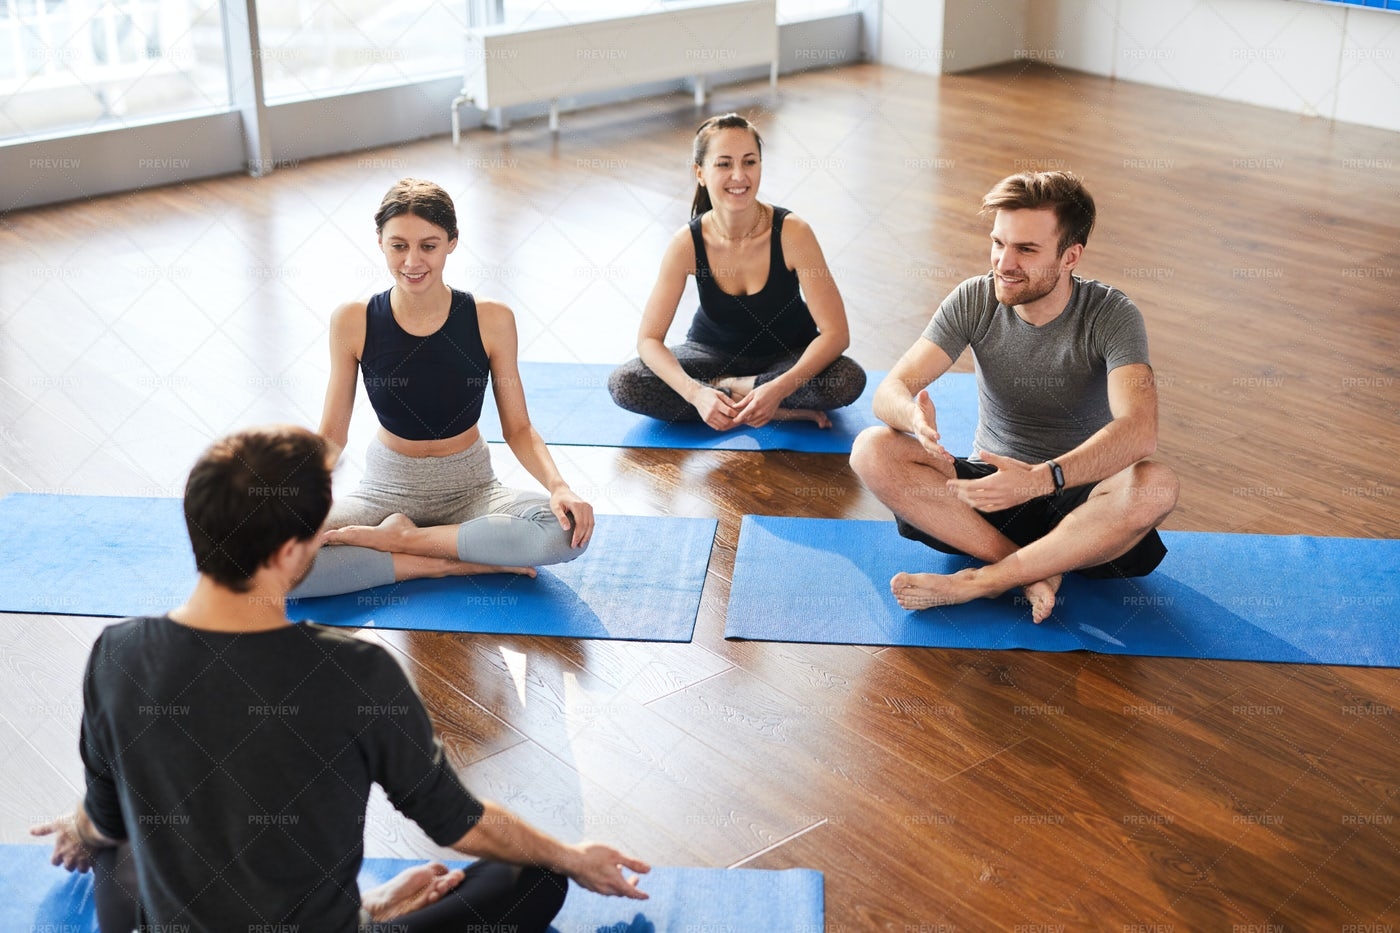 Yoga Students At Workshop With...: Stock Photos